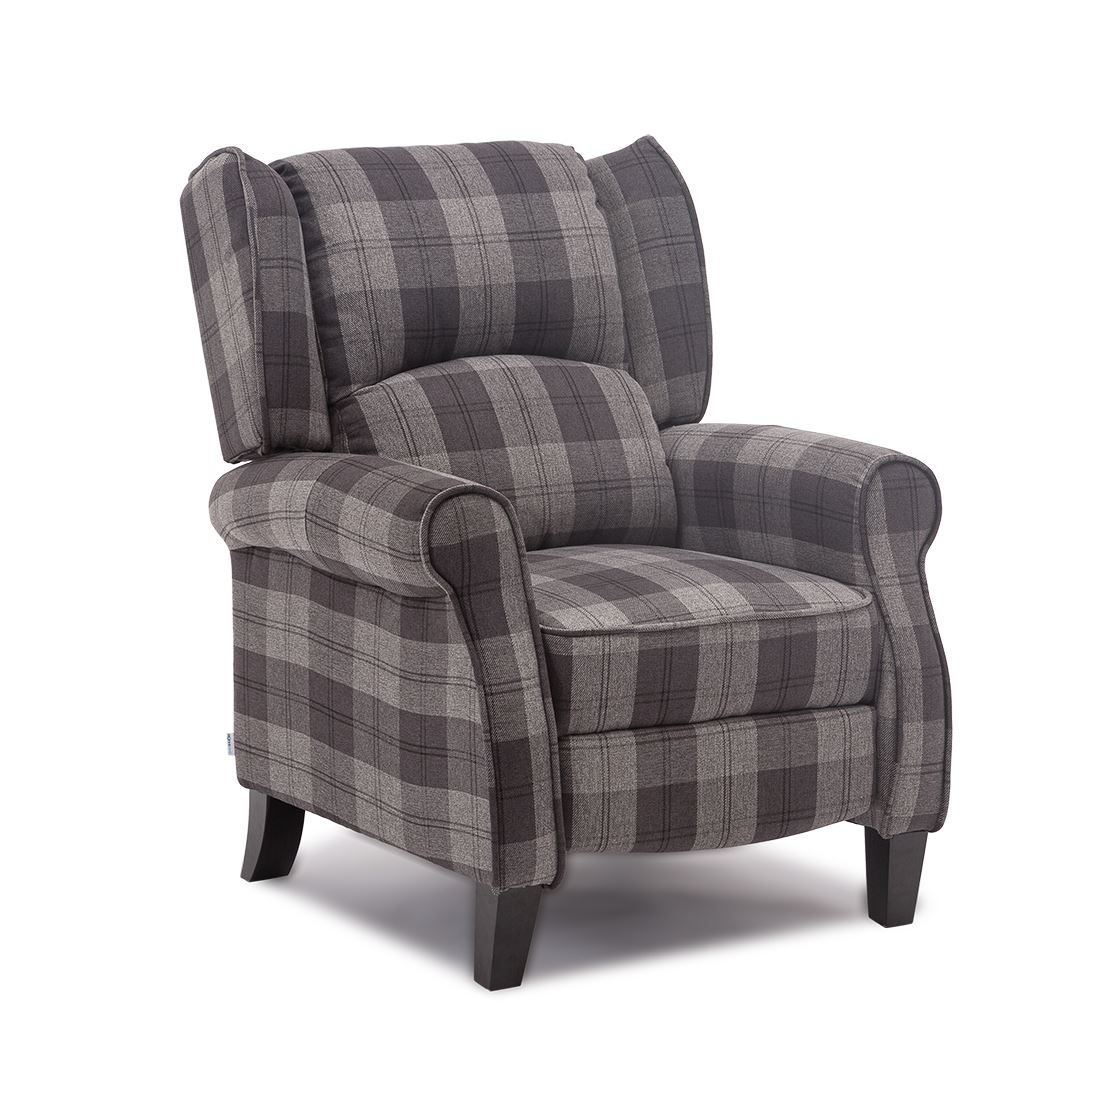 Affordable Armchairs: EATON WING BACK FIRESIDE CHECK FABRIC RECLINER ARMCHAIR